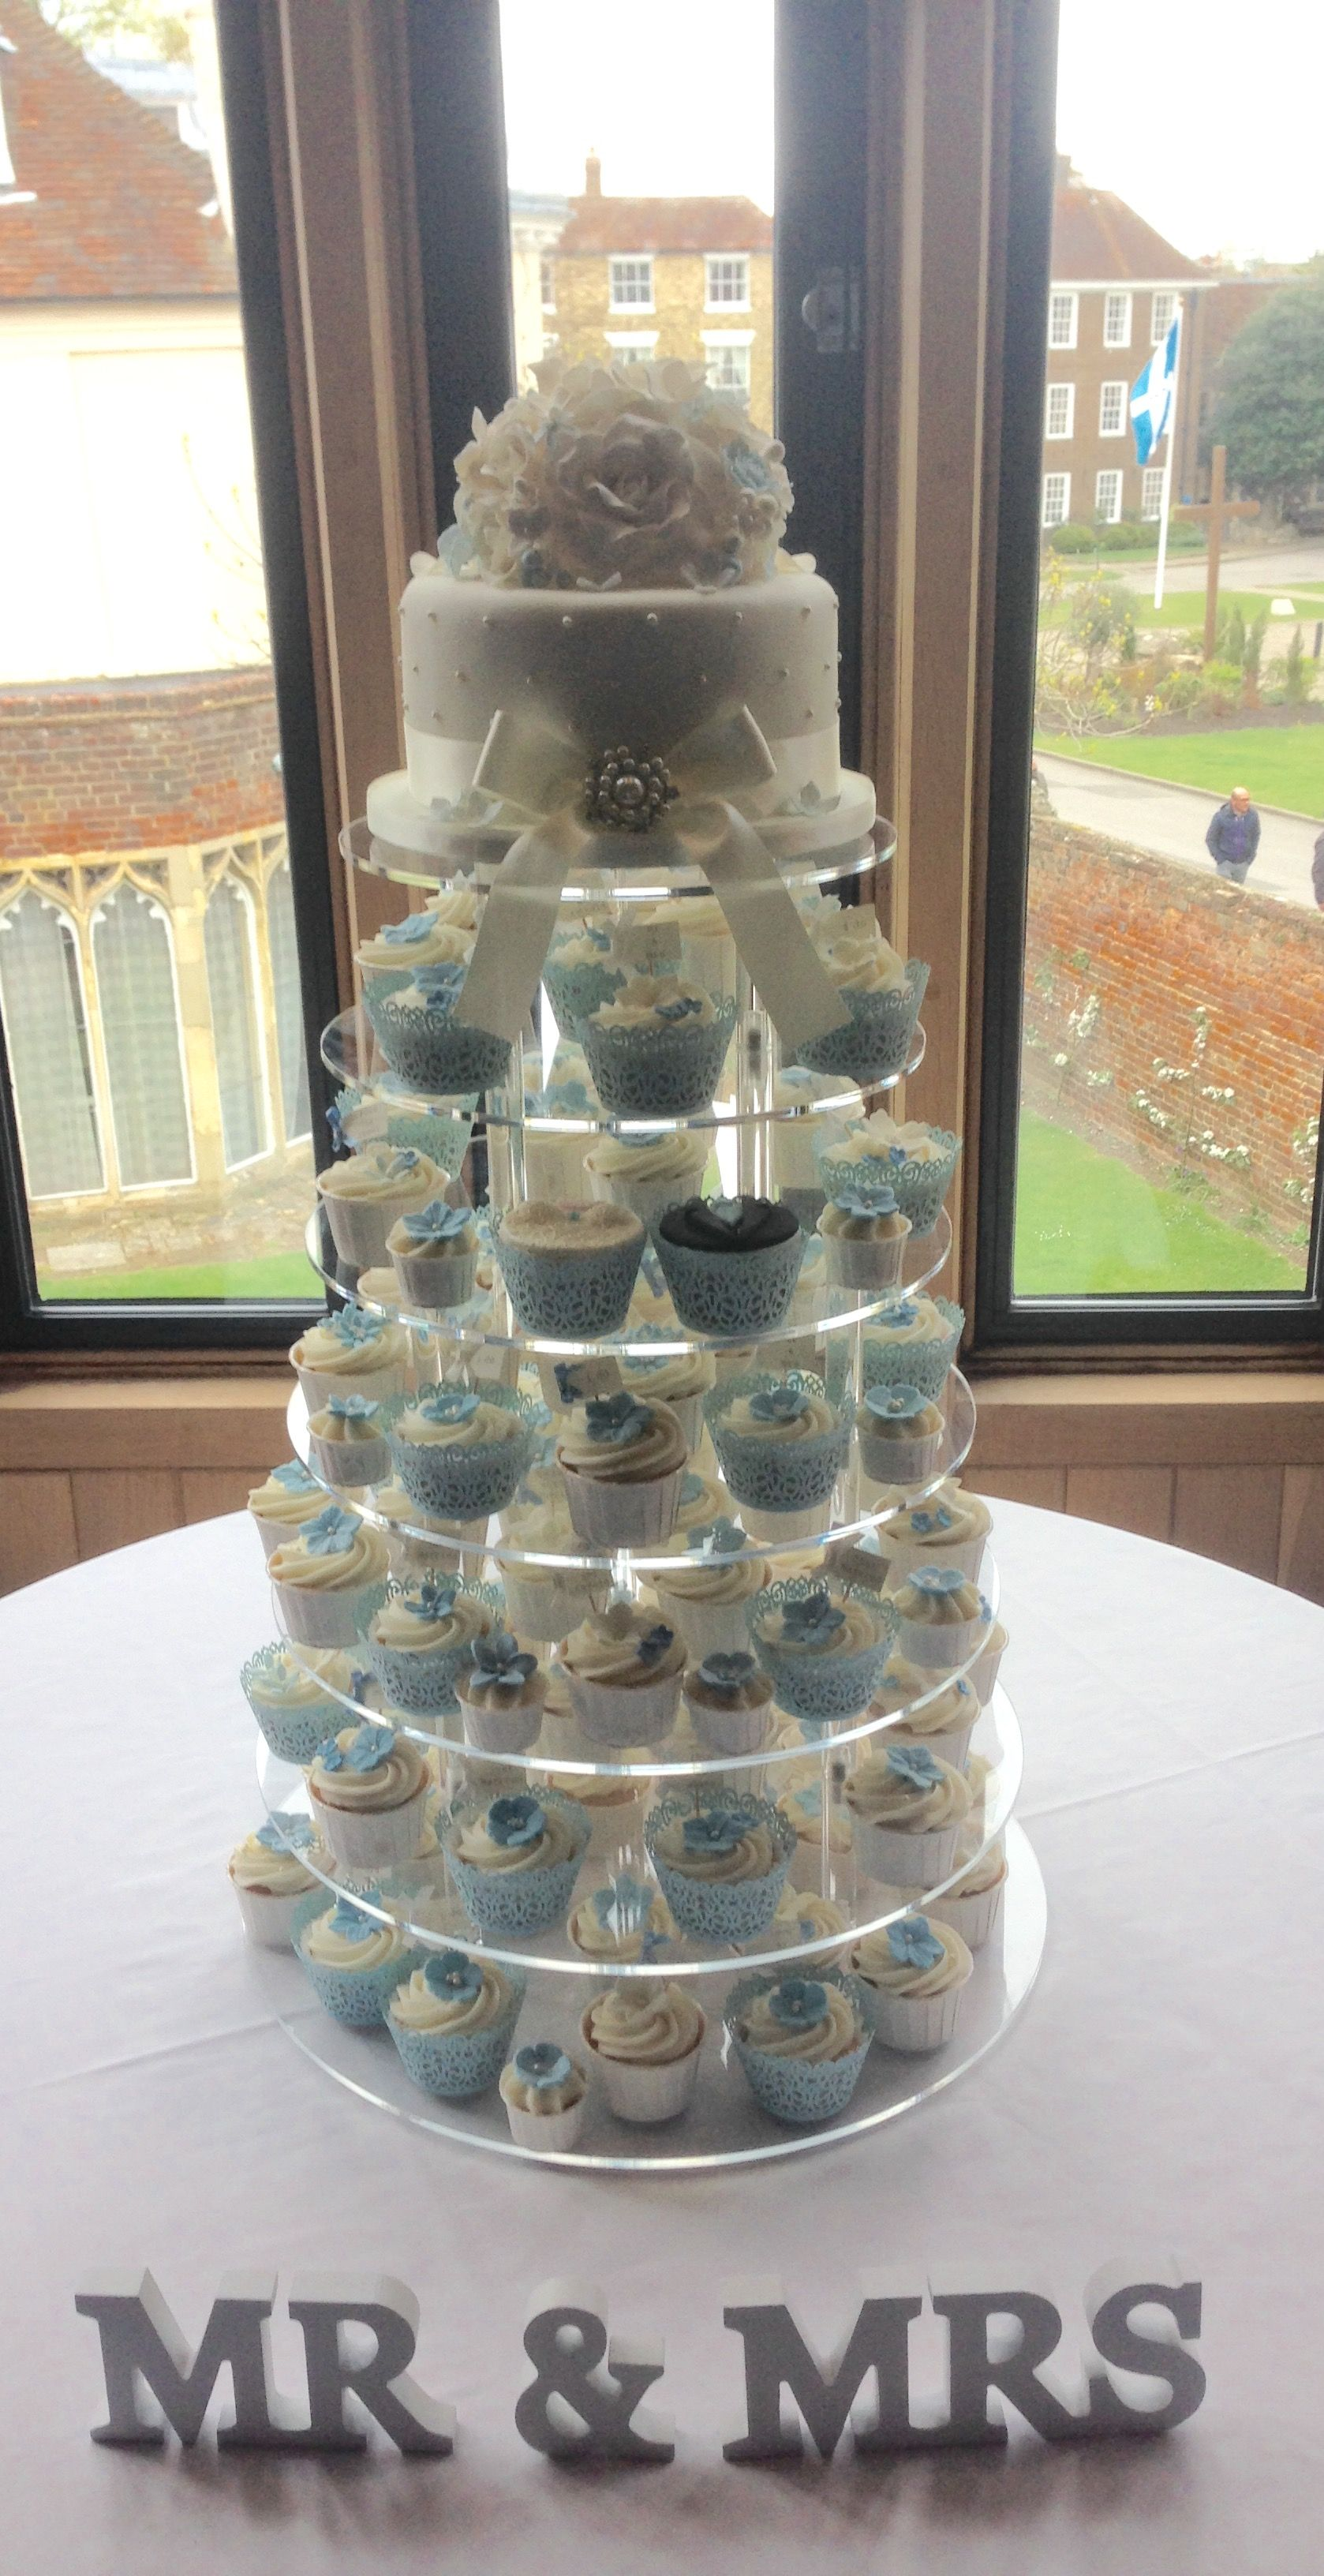 Cornflower blue and ivory pearl cupcake wedding tower